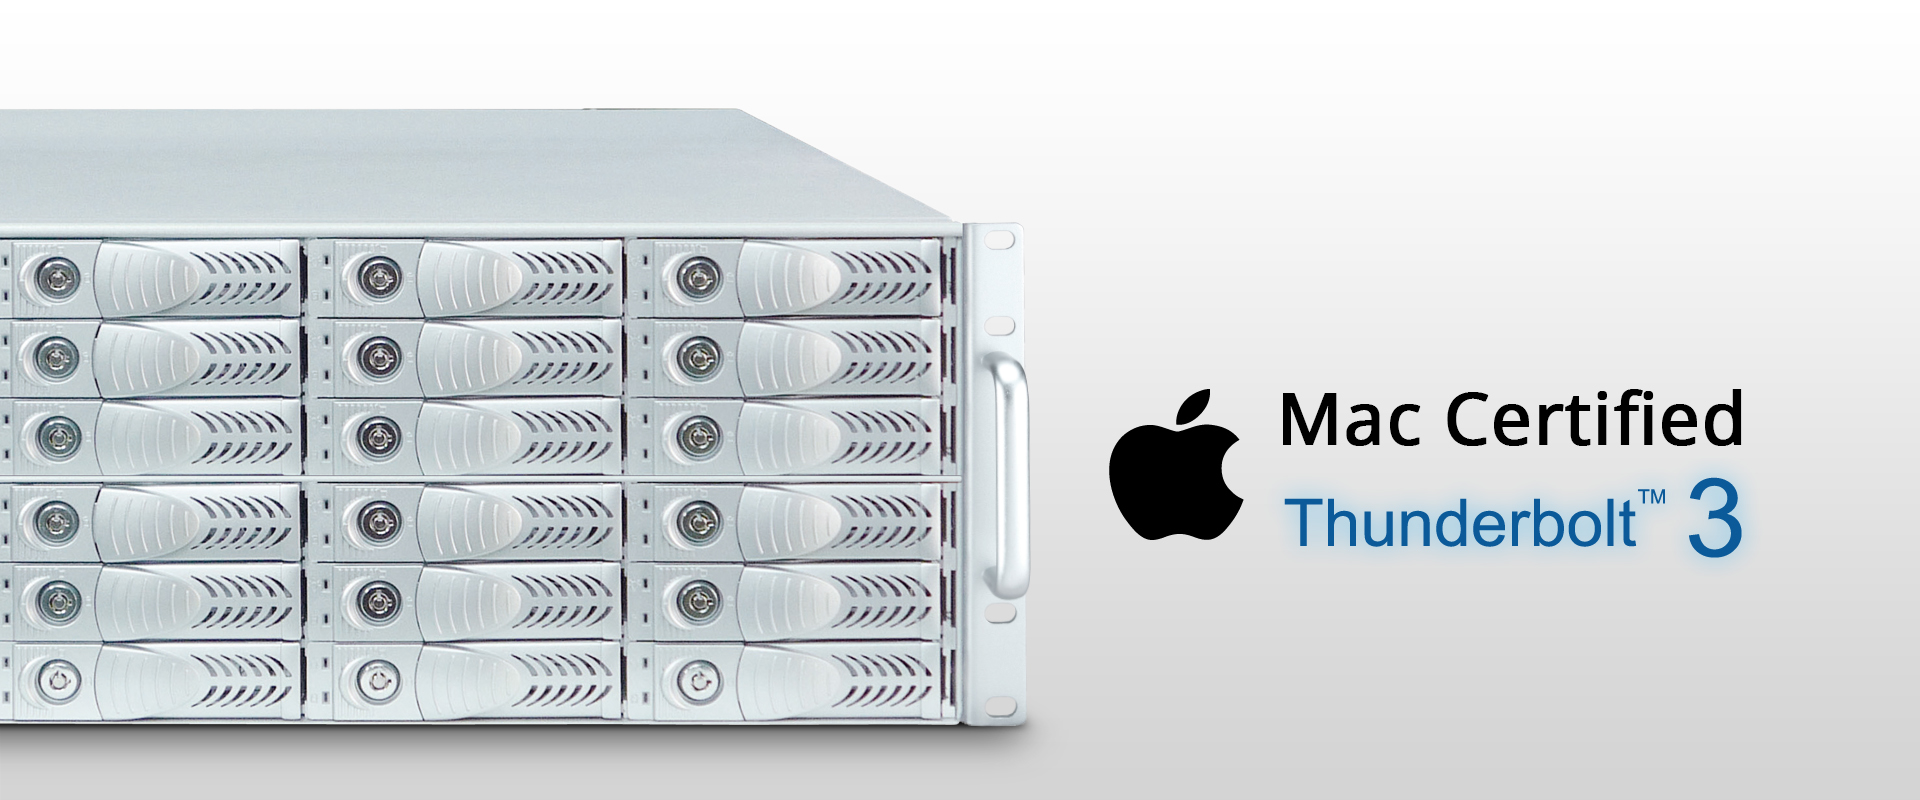 Netstor NA381TB3 has passed Apple's strict certification test process and is Mac certified.